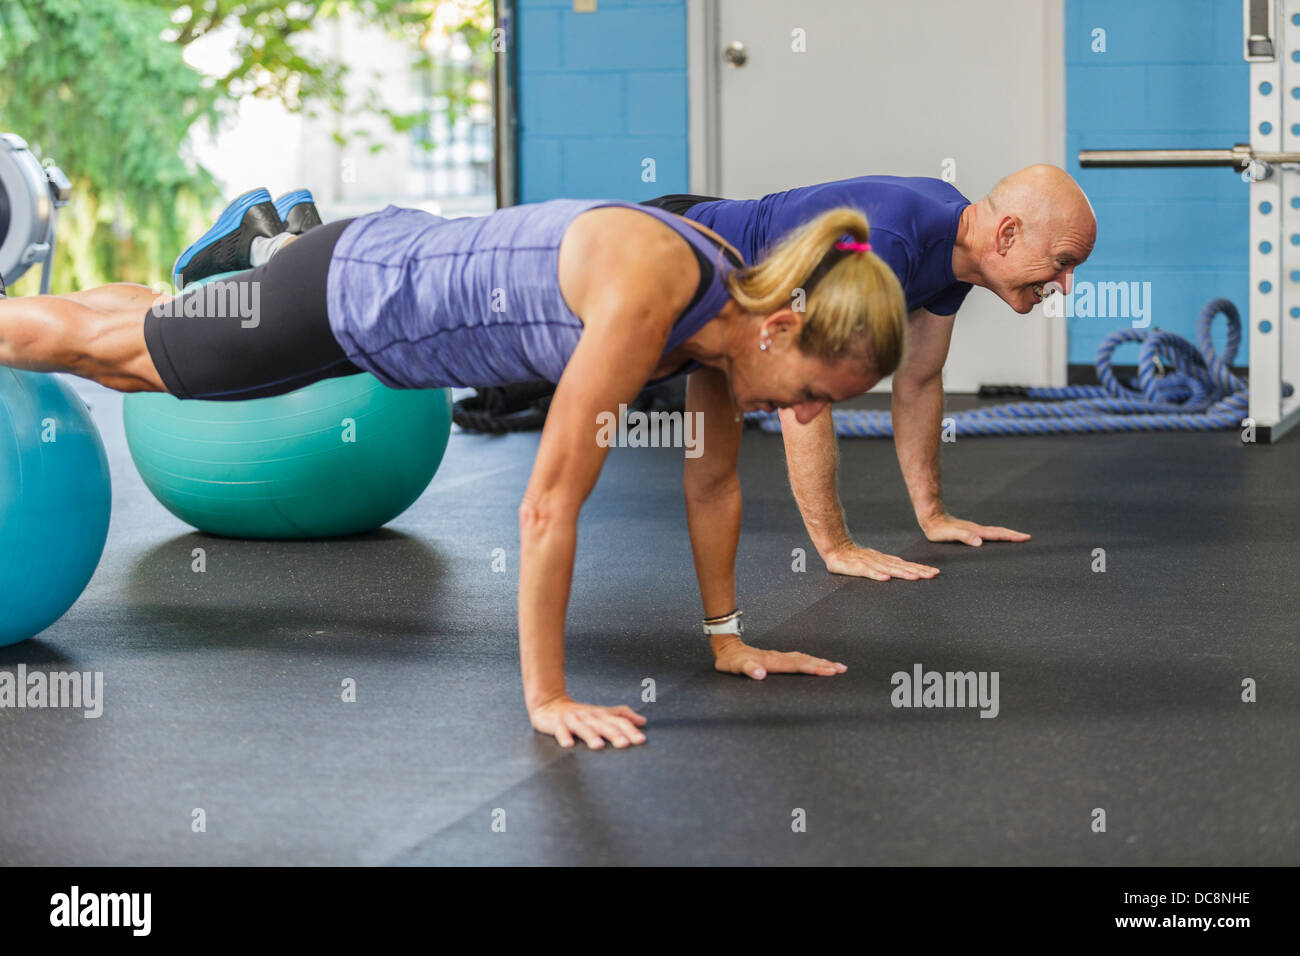 Particpants working out at a private fitness studio. - Stock Image